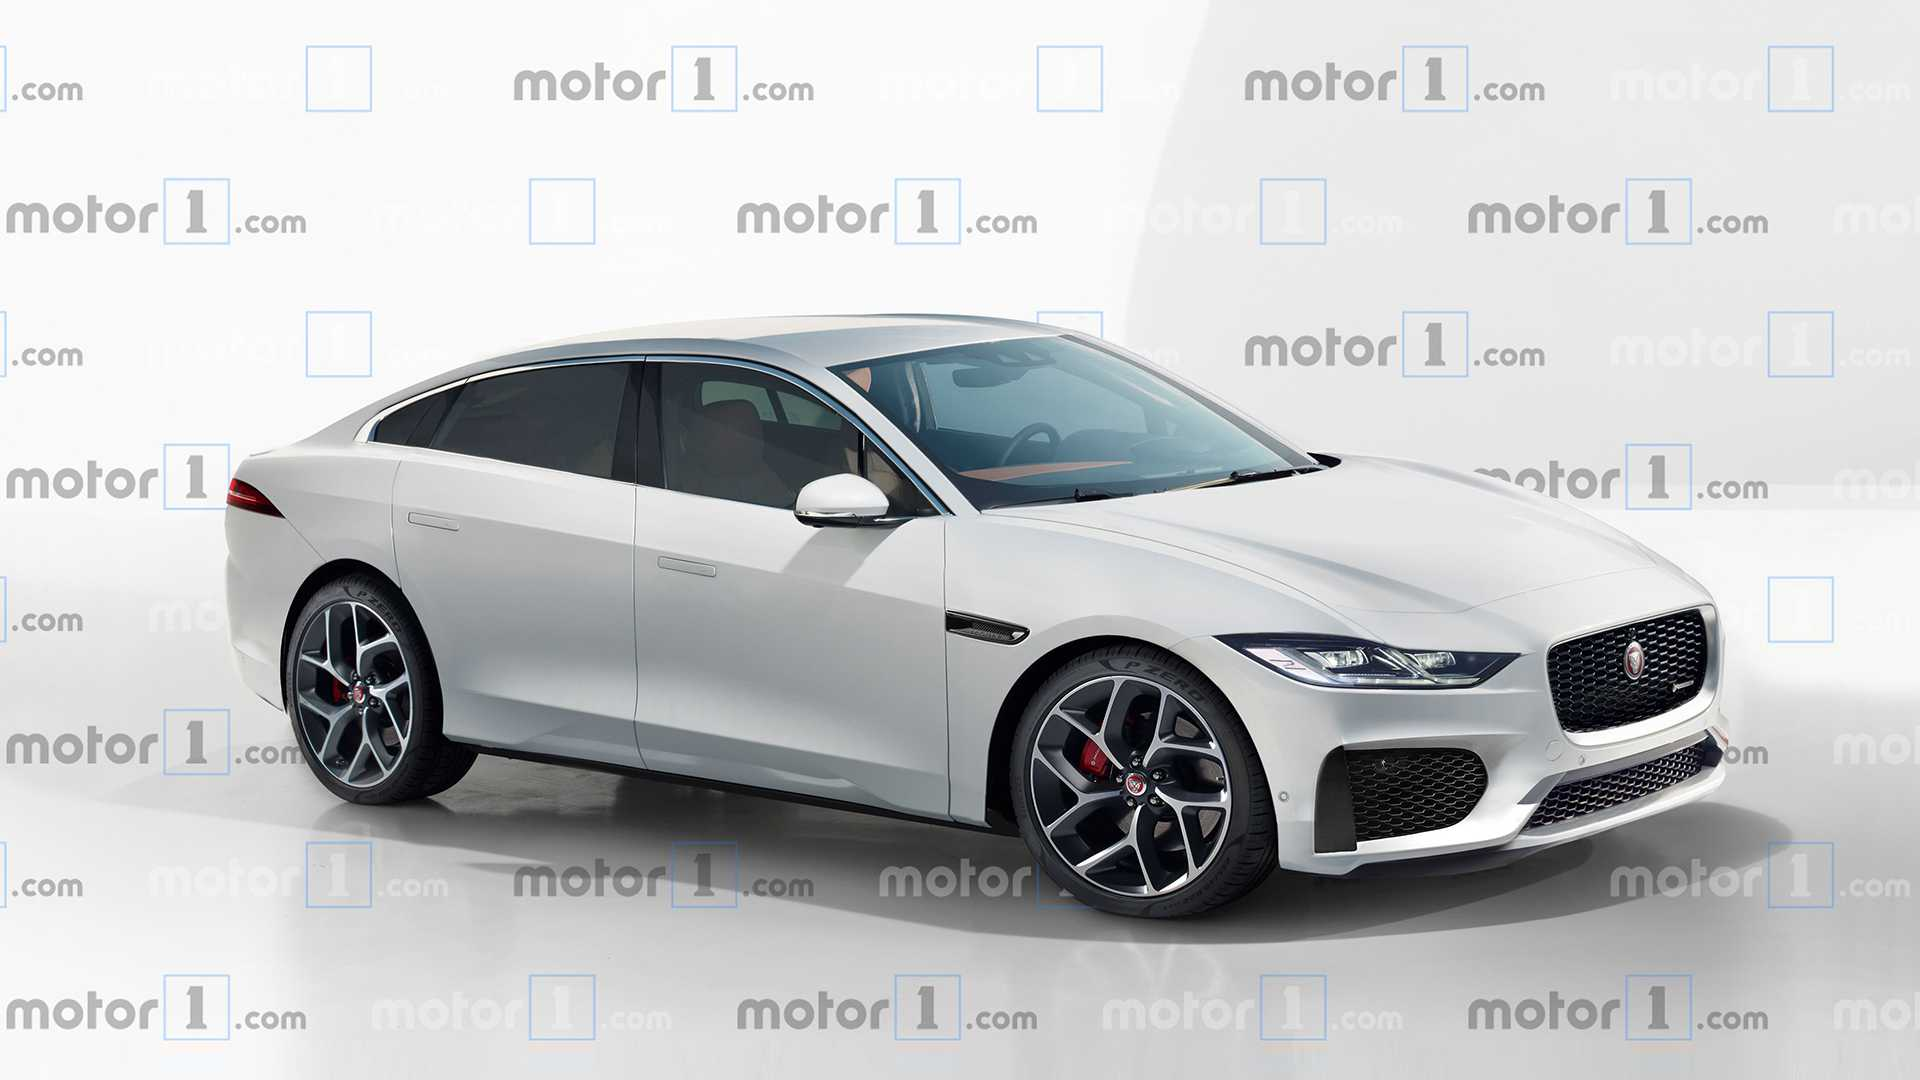 30 New Jaguar Xf New Model 2020 New Review with Jaguar Xf New Model 2020